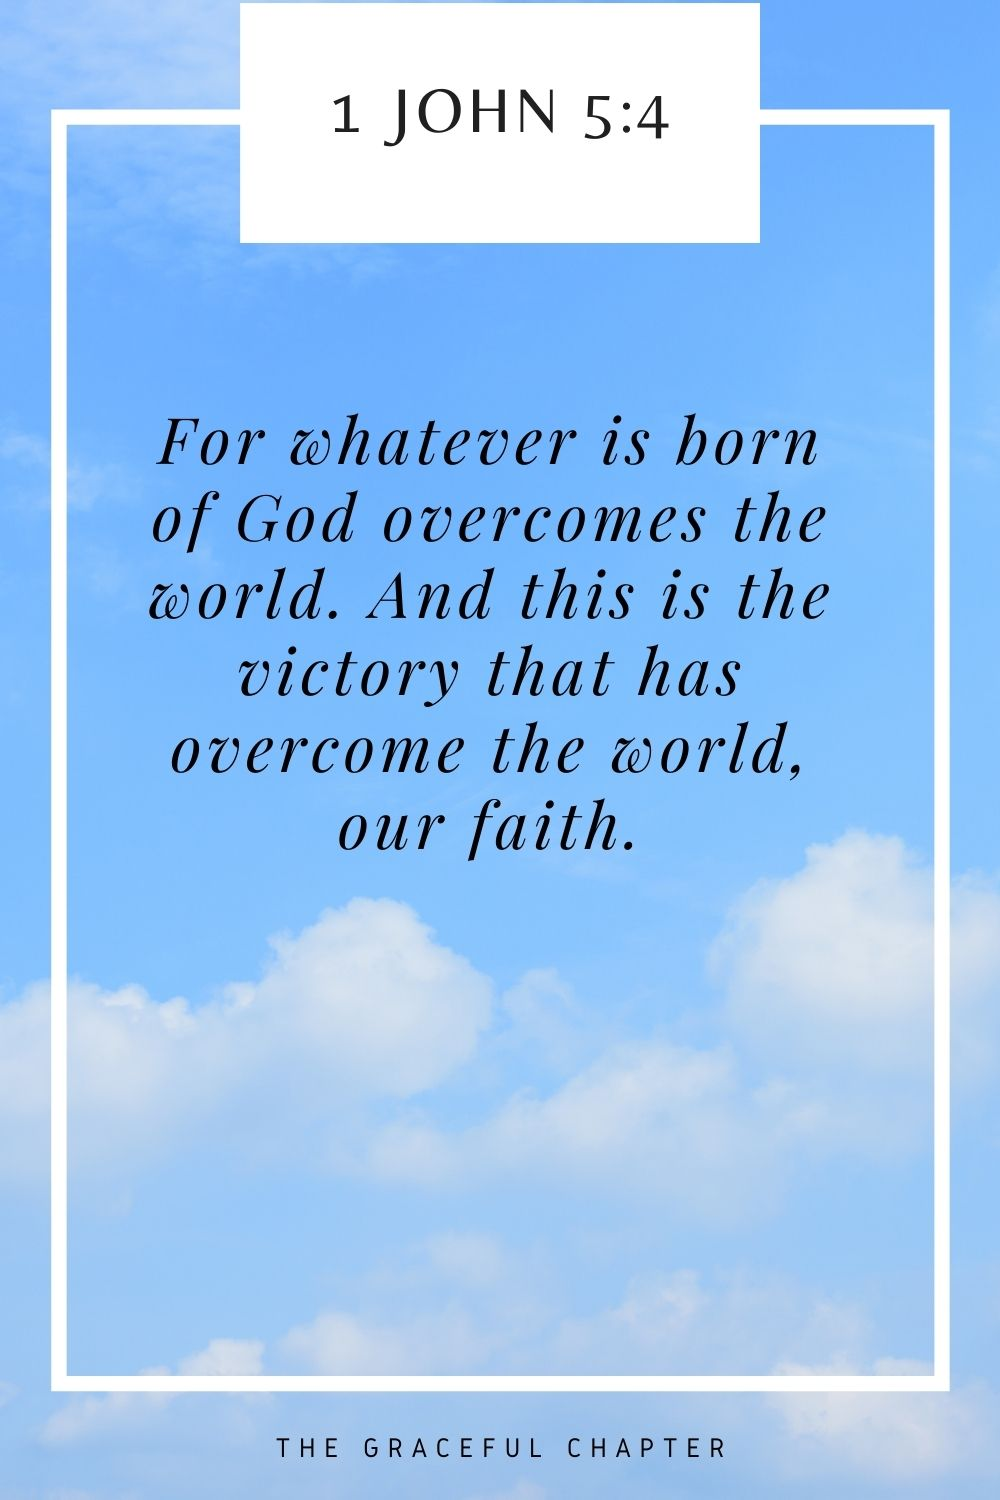 For whatever is born of God overcomes the world. And this is the victory that has overcome the world, our faith. 1 John 5:4